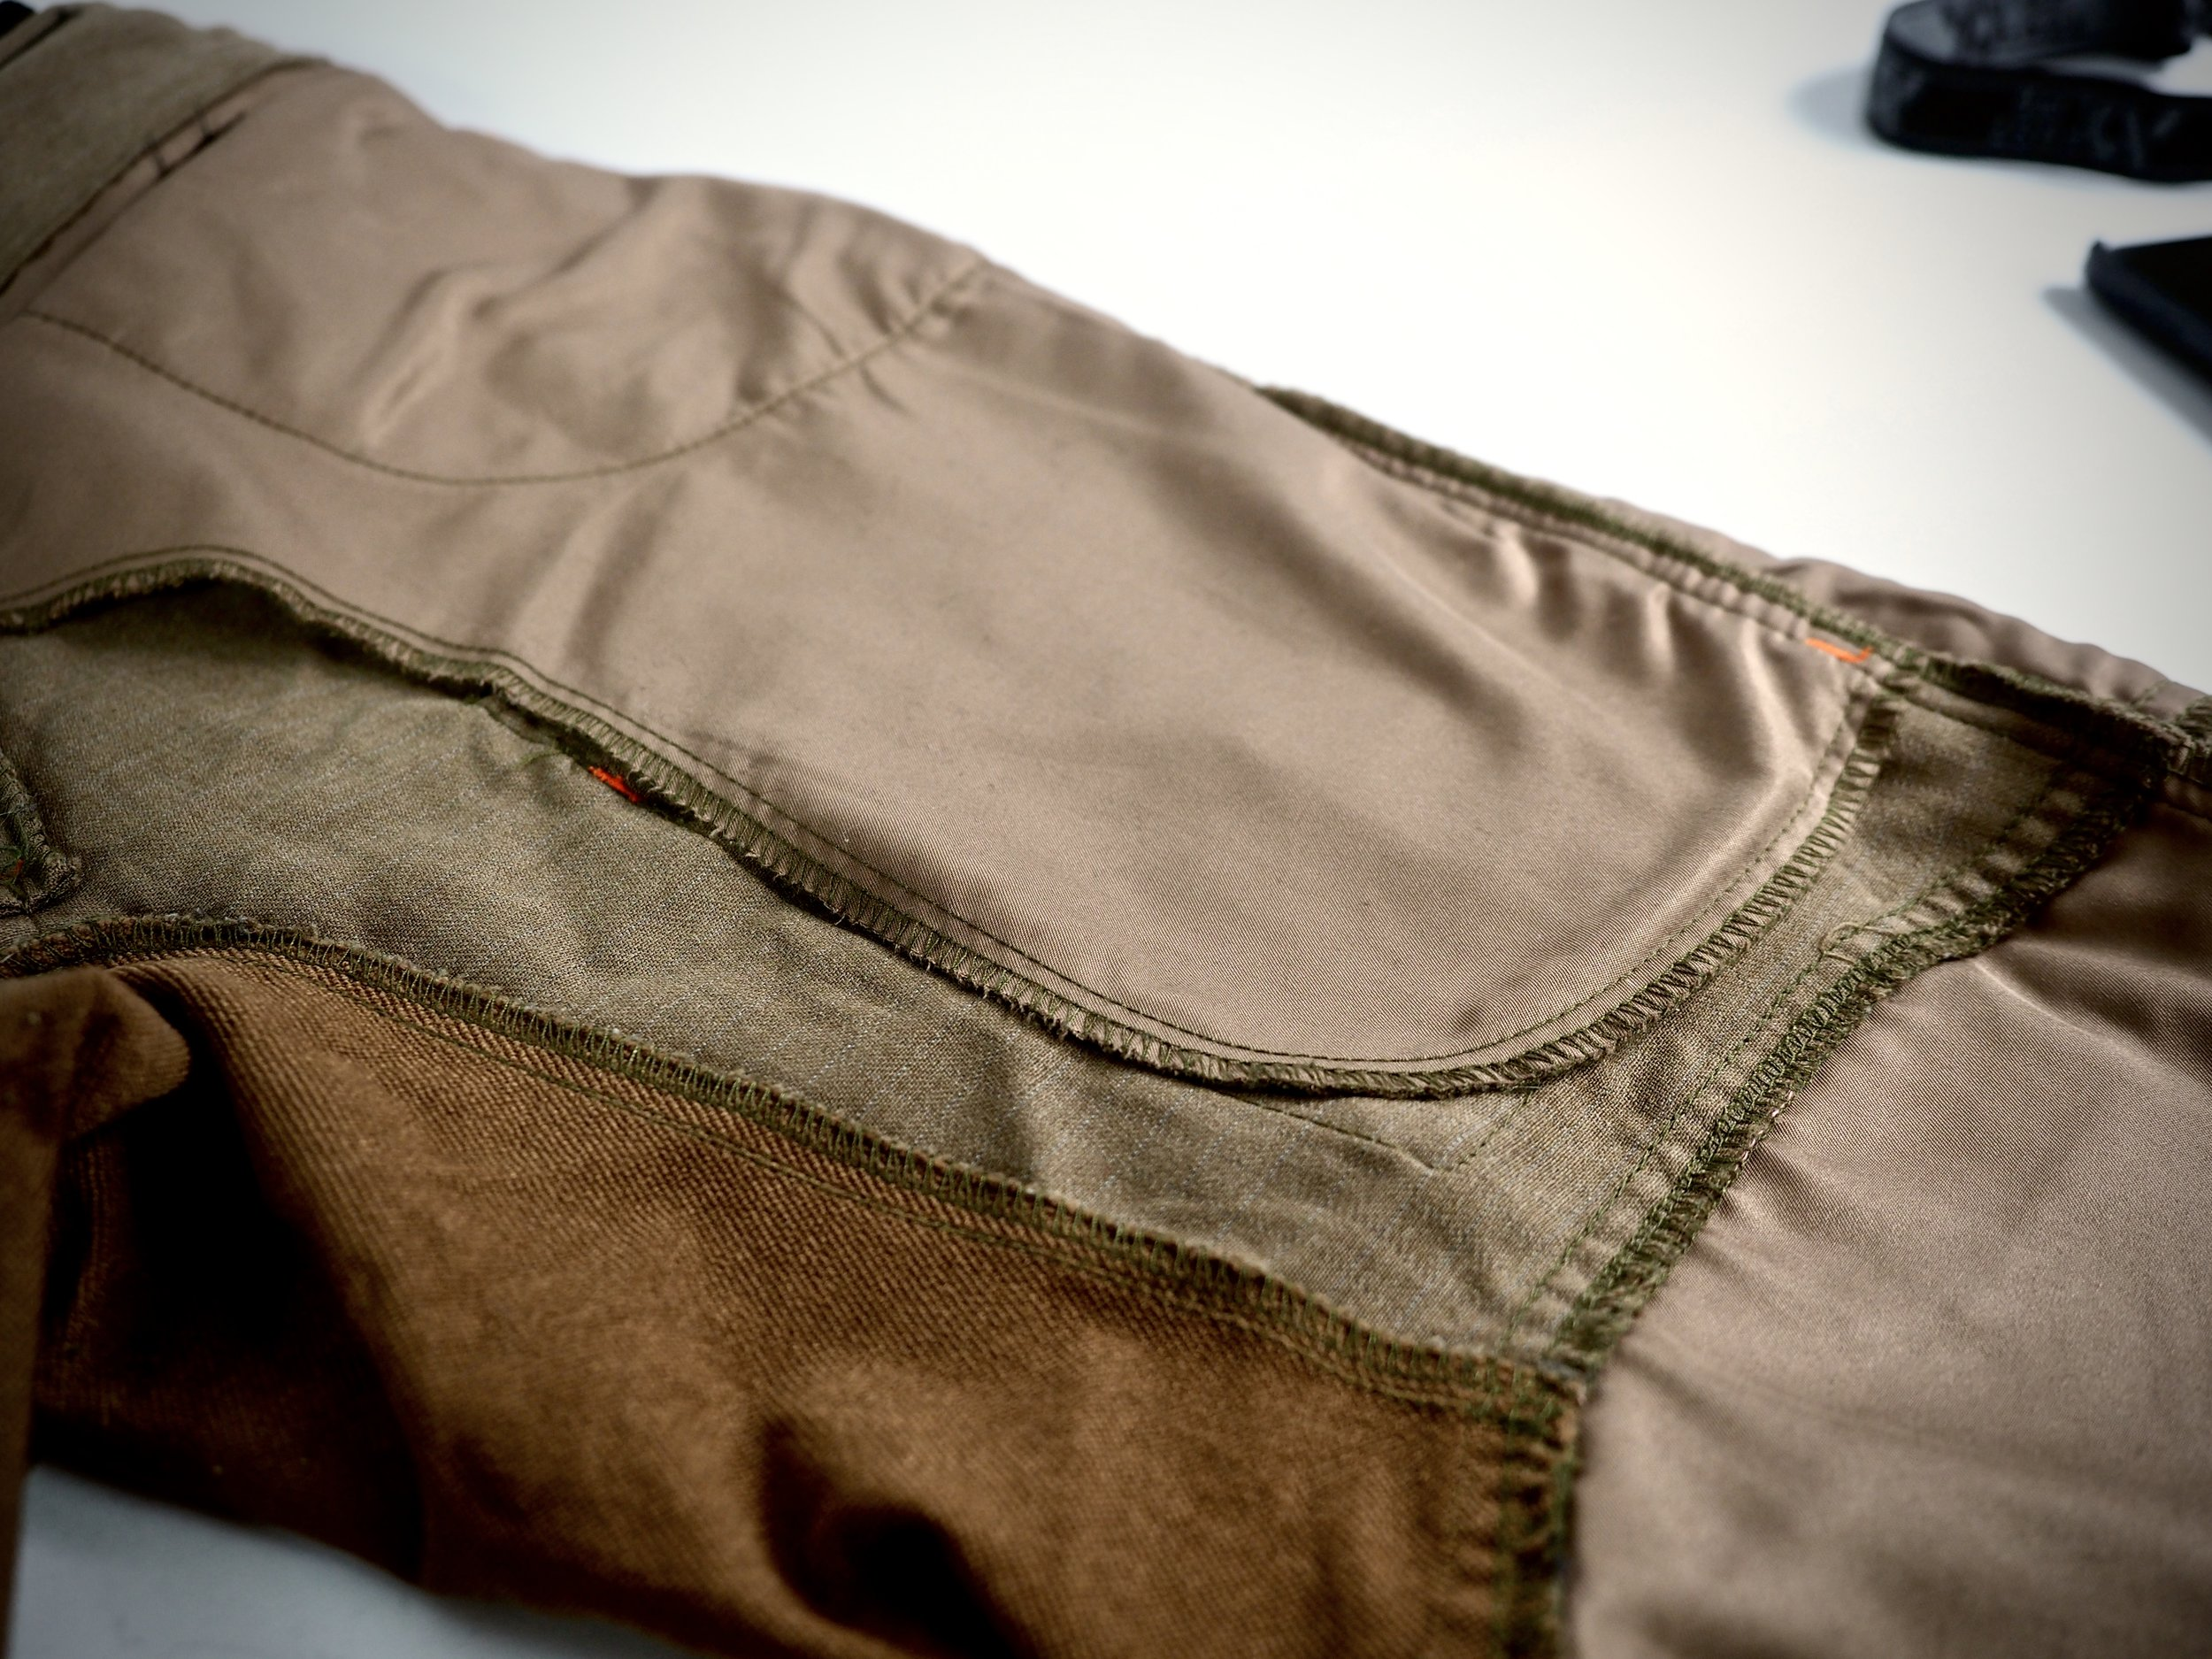 The front hand pockets are deep...and I mean DEEP. The bottoms of them reach all the way down to the bottom of the cargo pocket, which to me is a bit excessive.